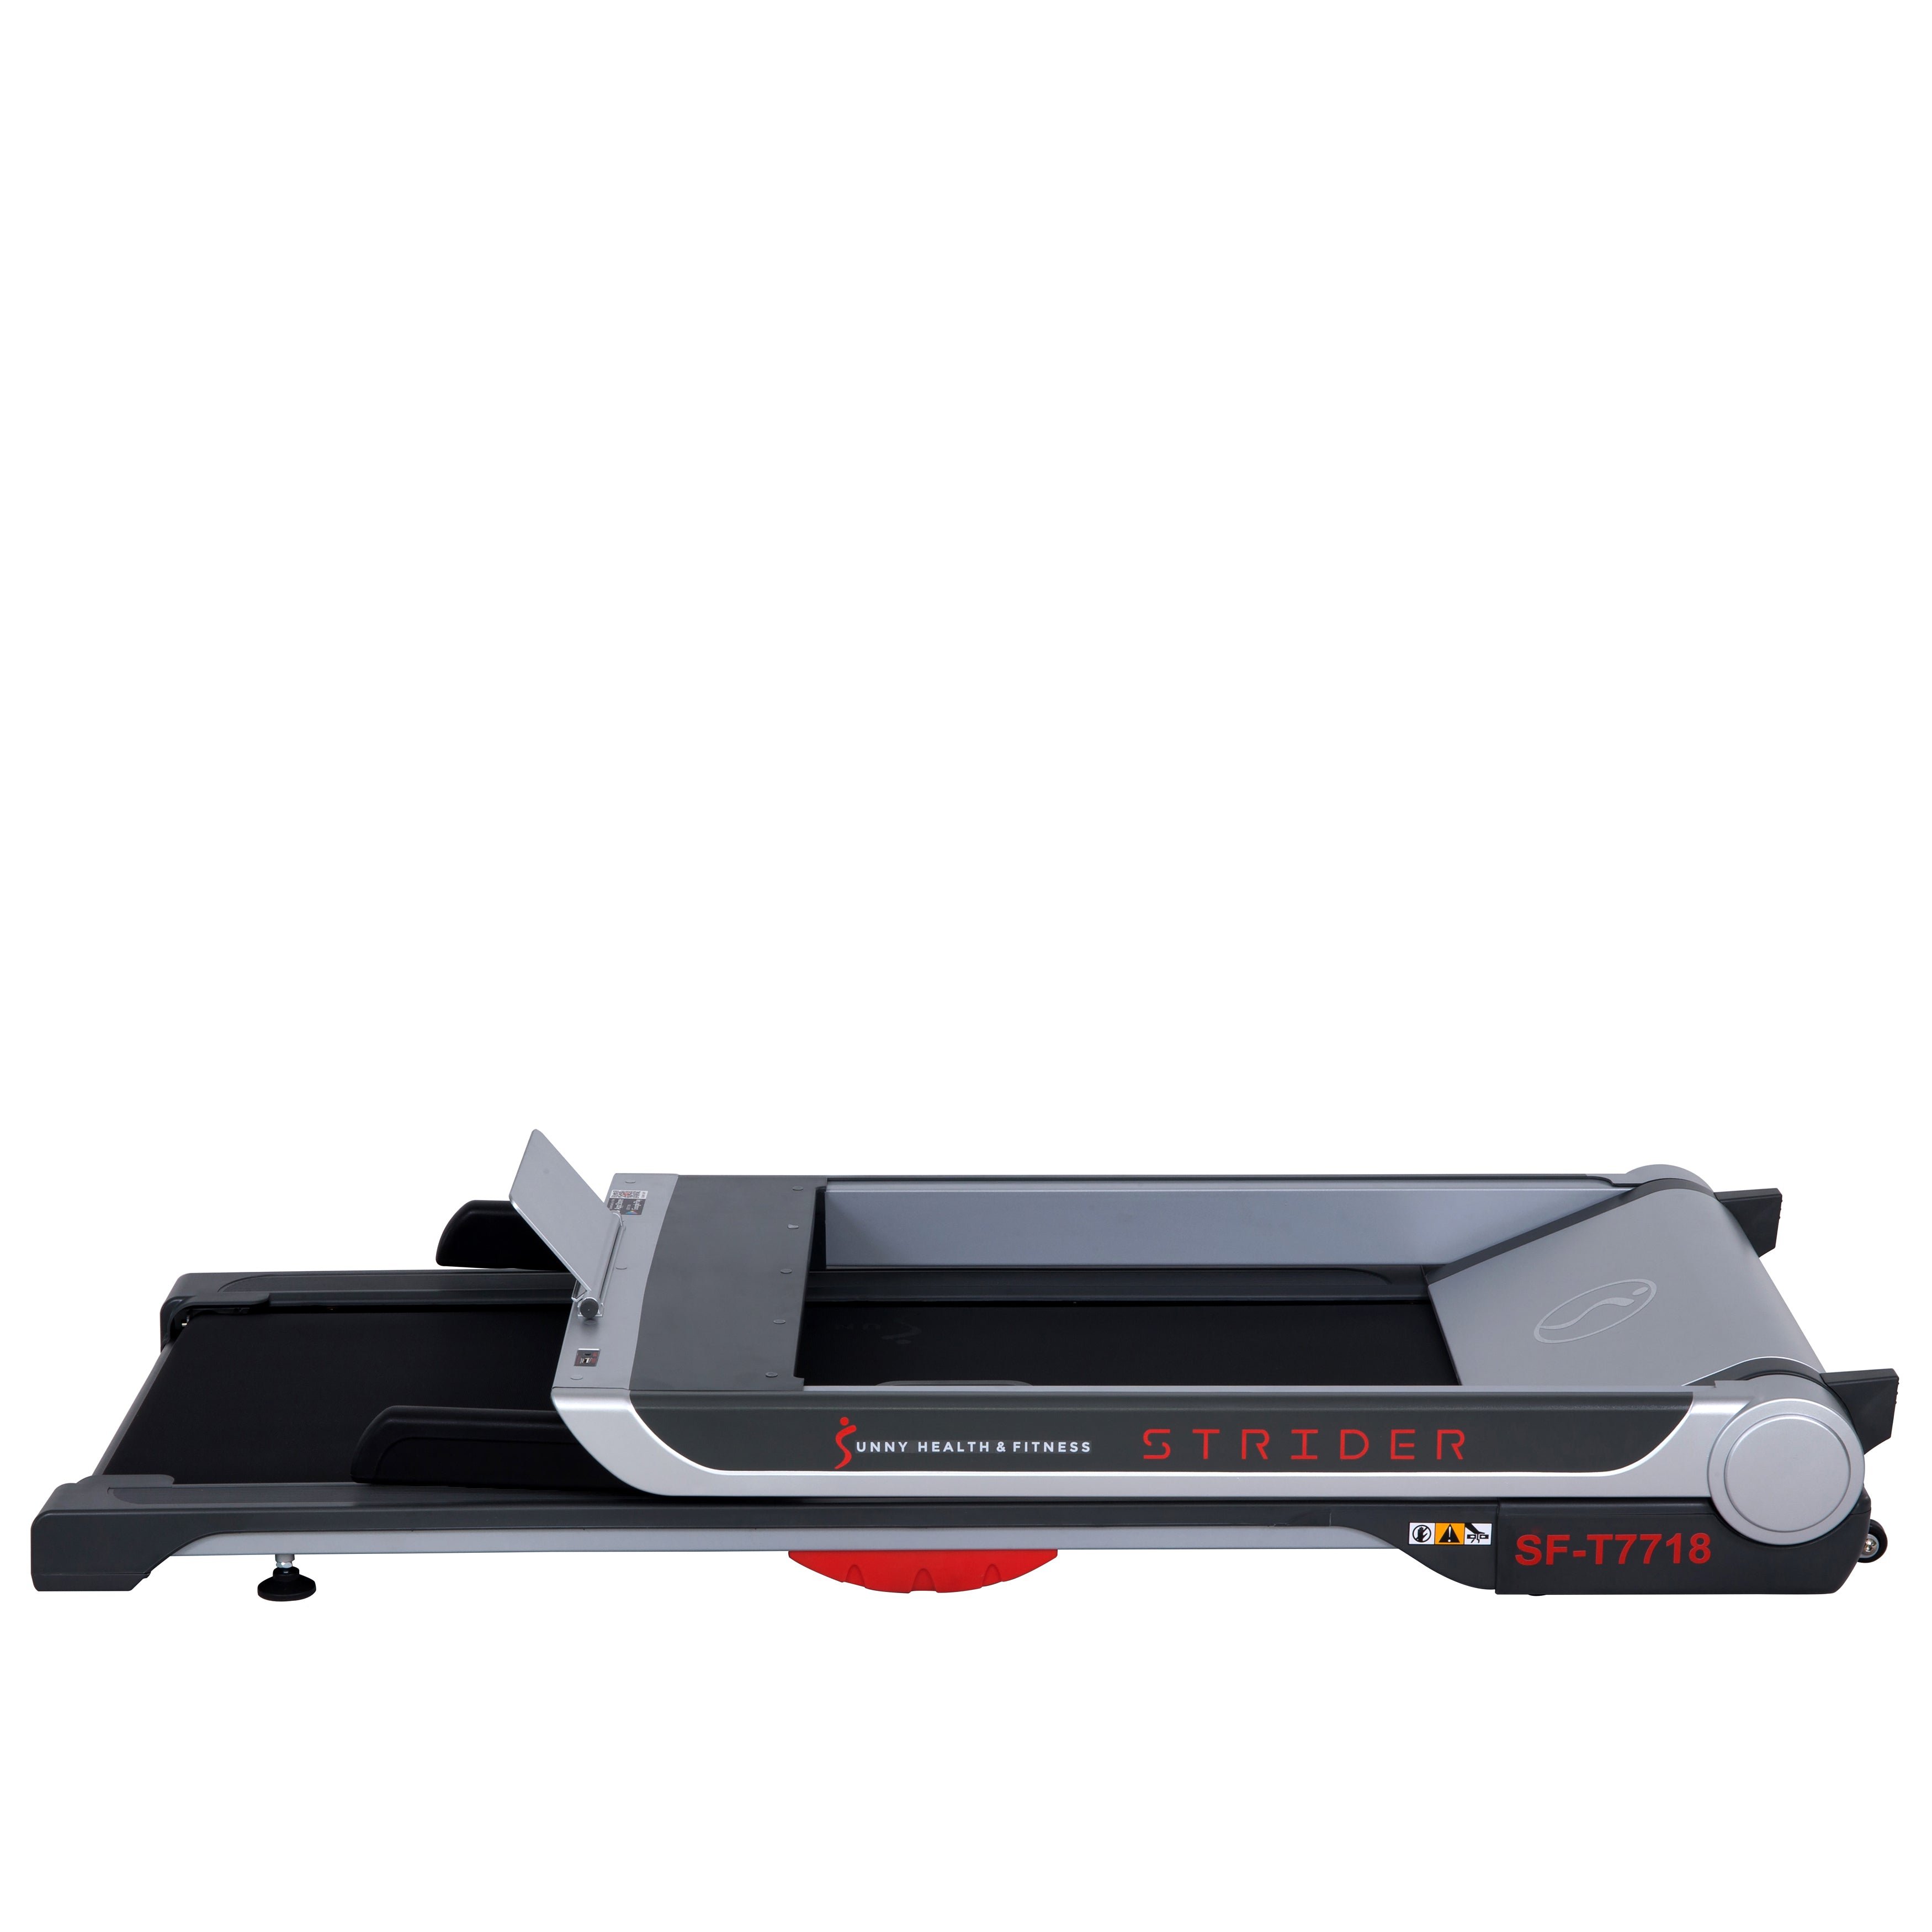 sunny-health-fitness-treadmills-running-treadmill-20-wide-belt-flat-folding-low-pro-portability-speakers-USB-SF-T7718-low-profile